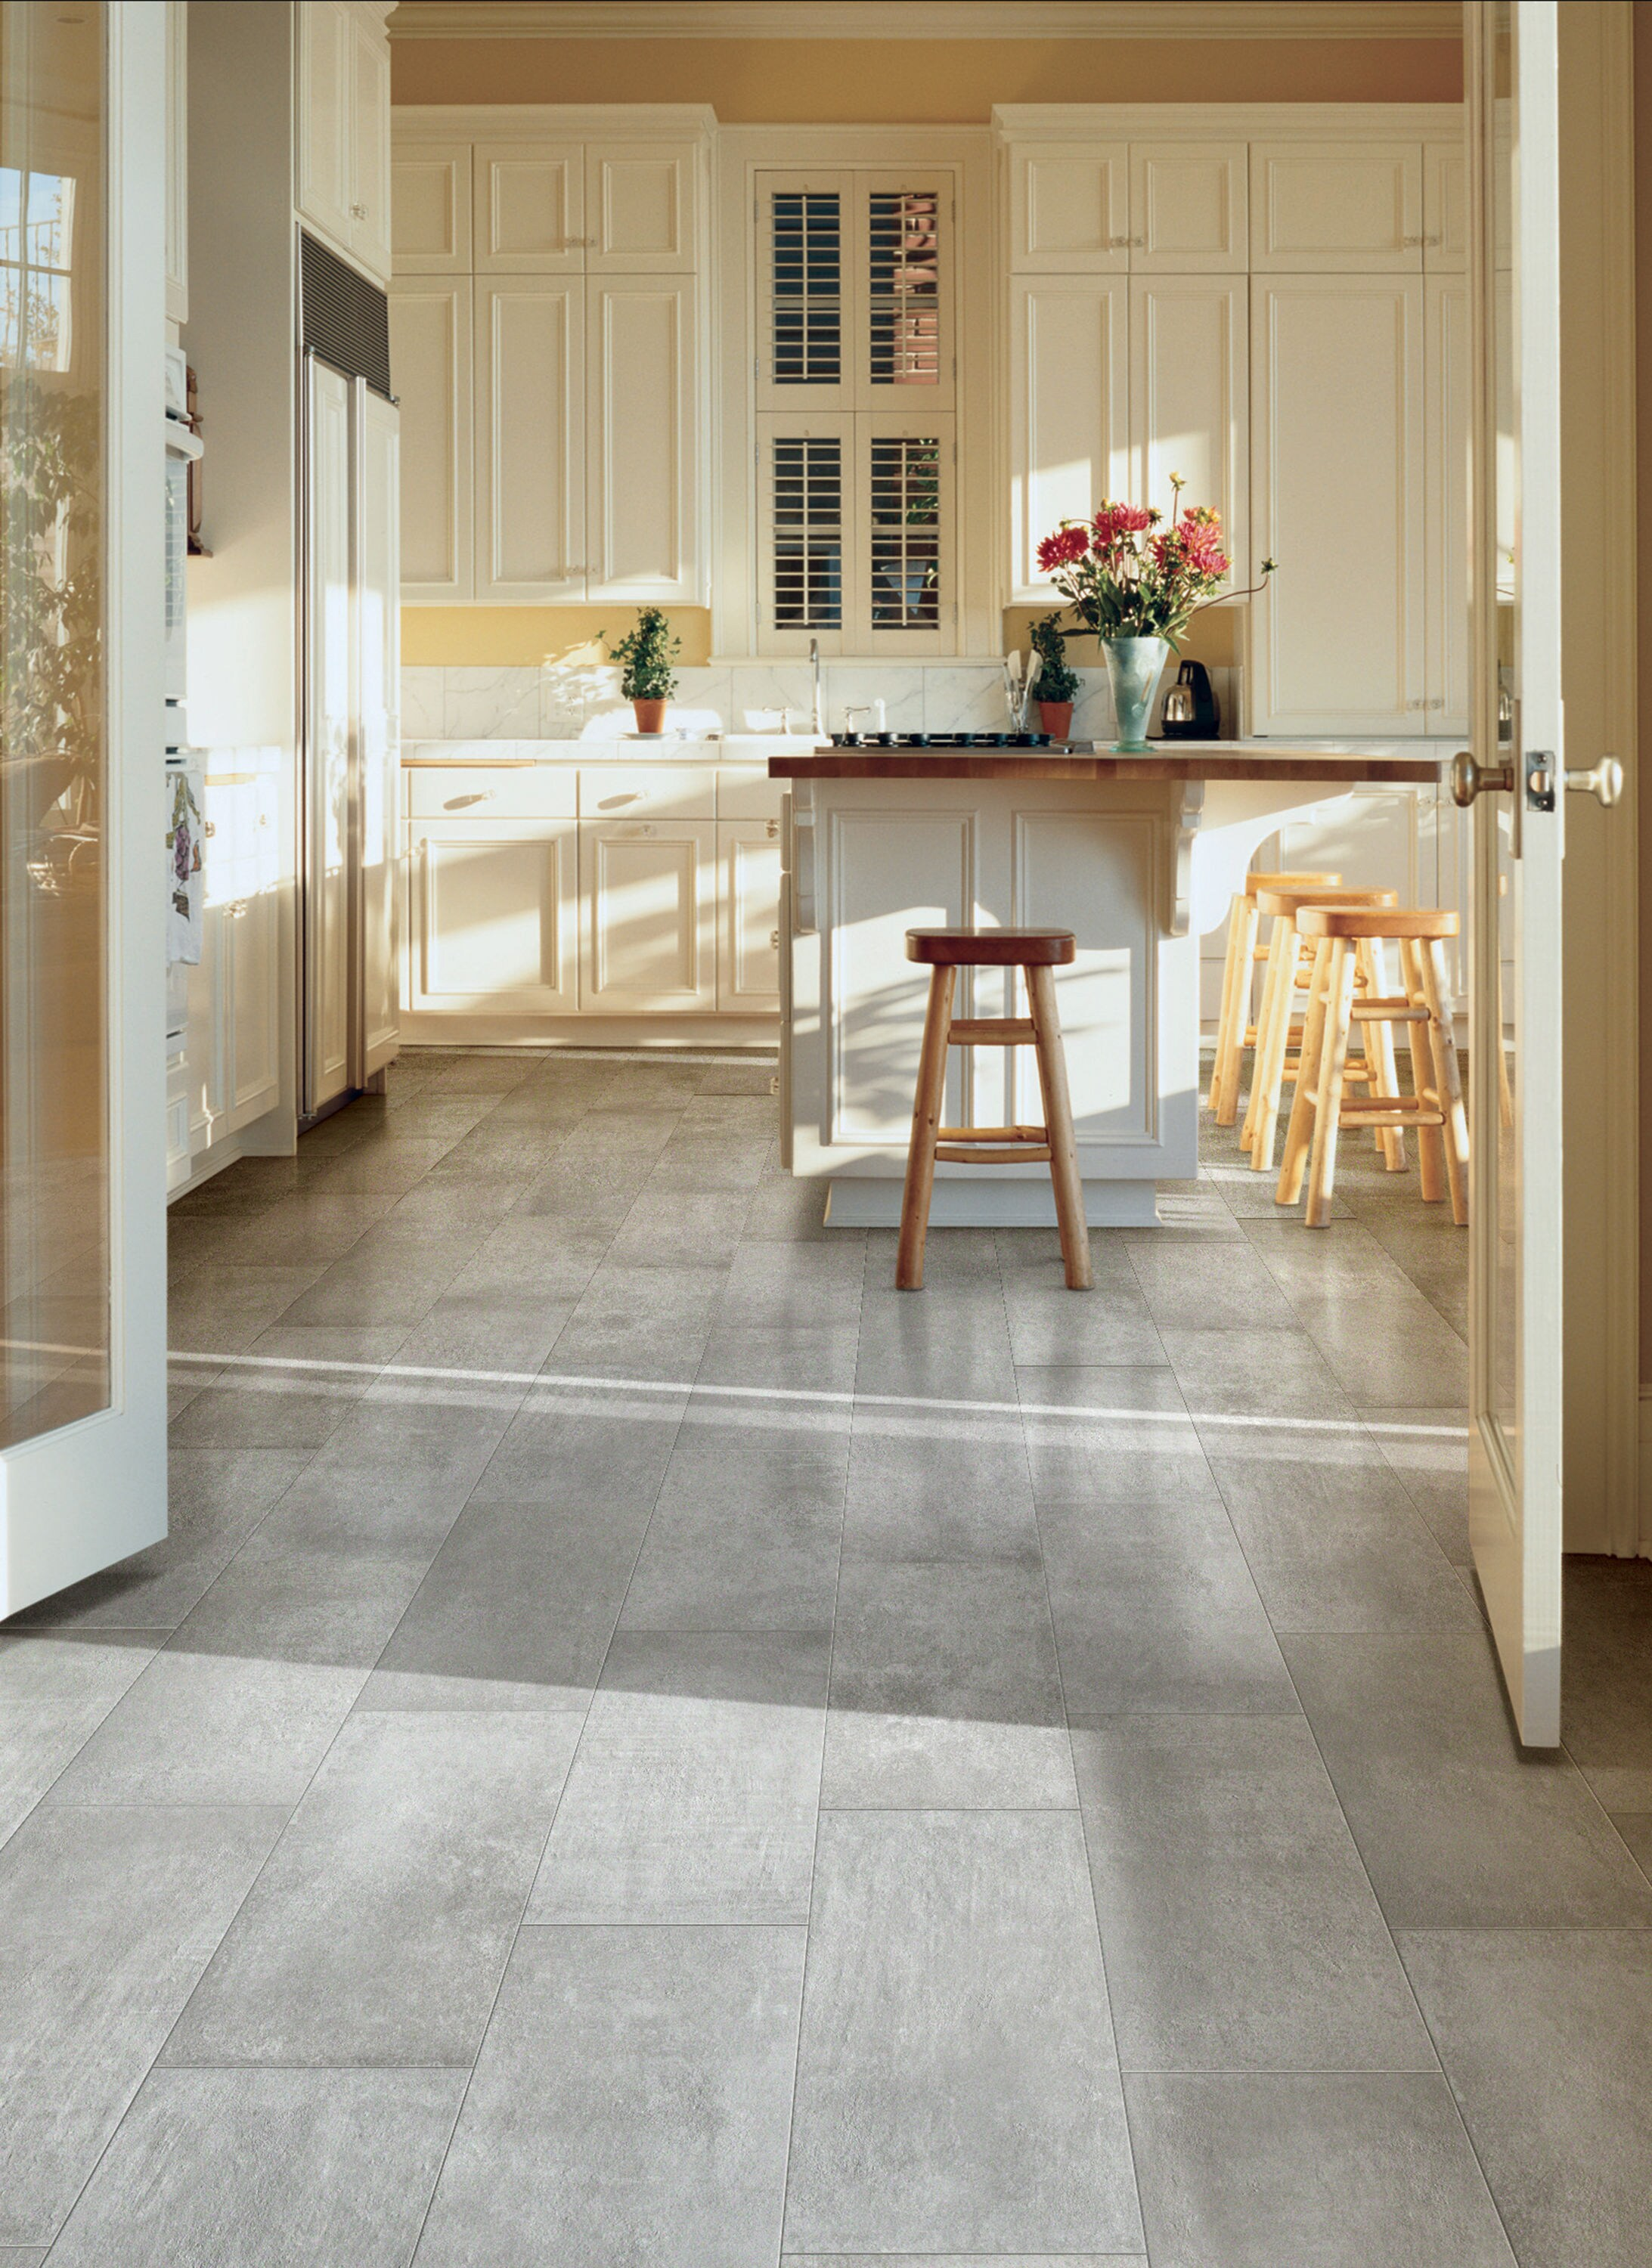 Style Selections DRP 9 9 CITYSIDE GRAY TILE S in the Tile ...